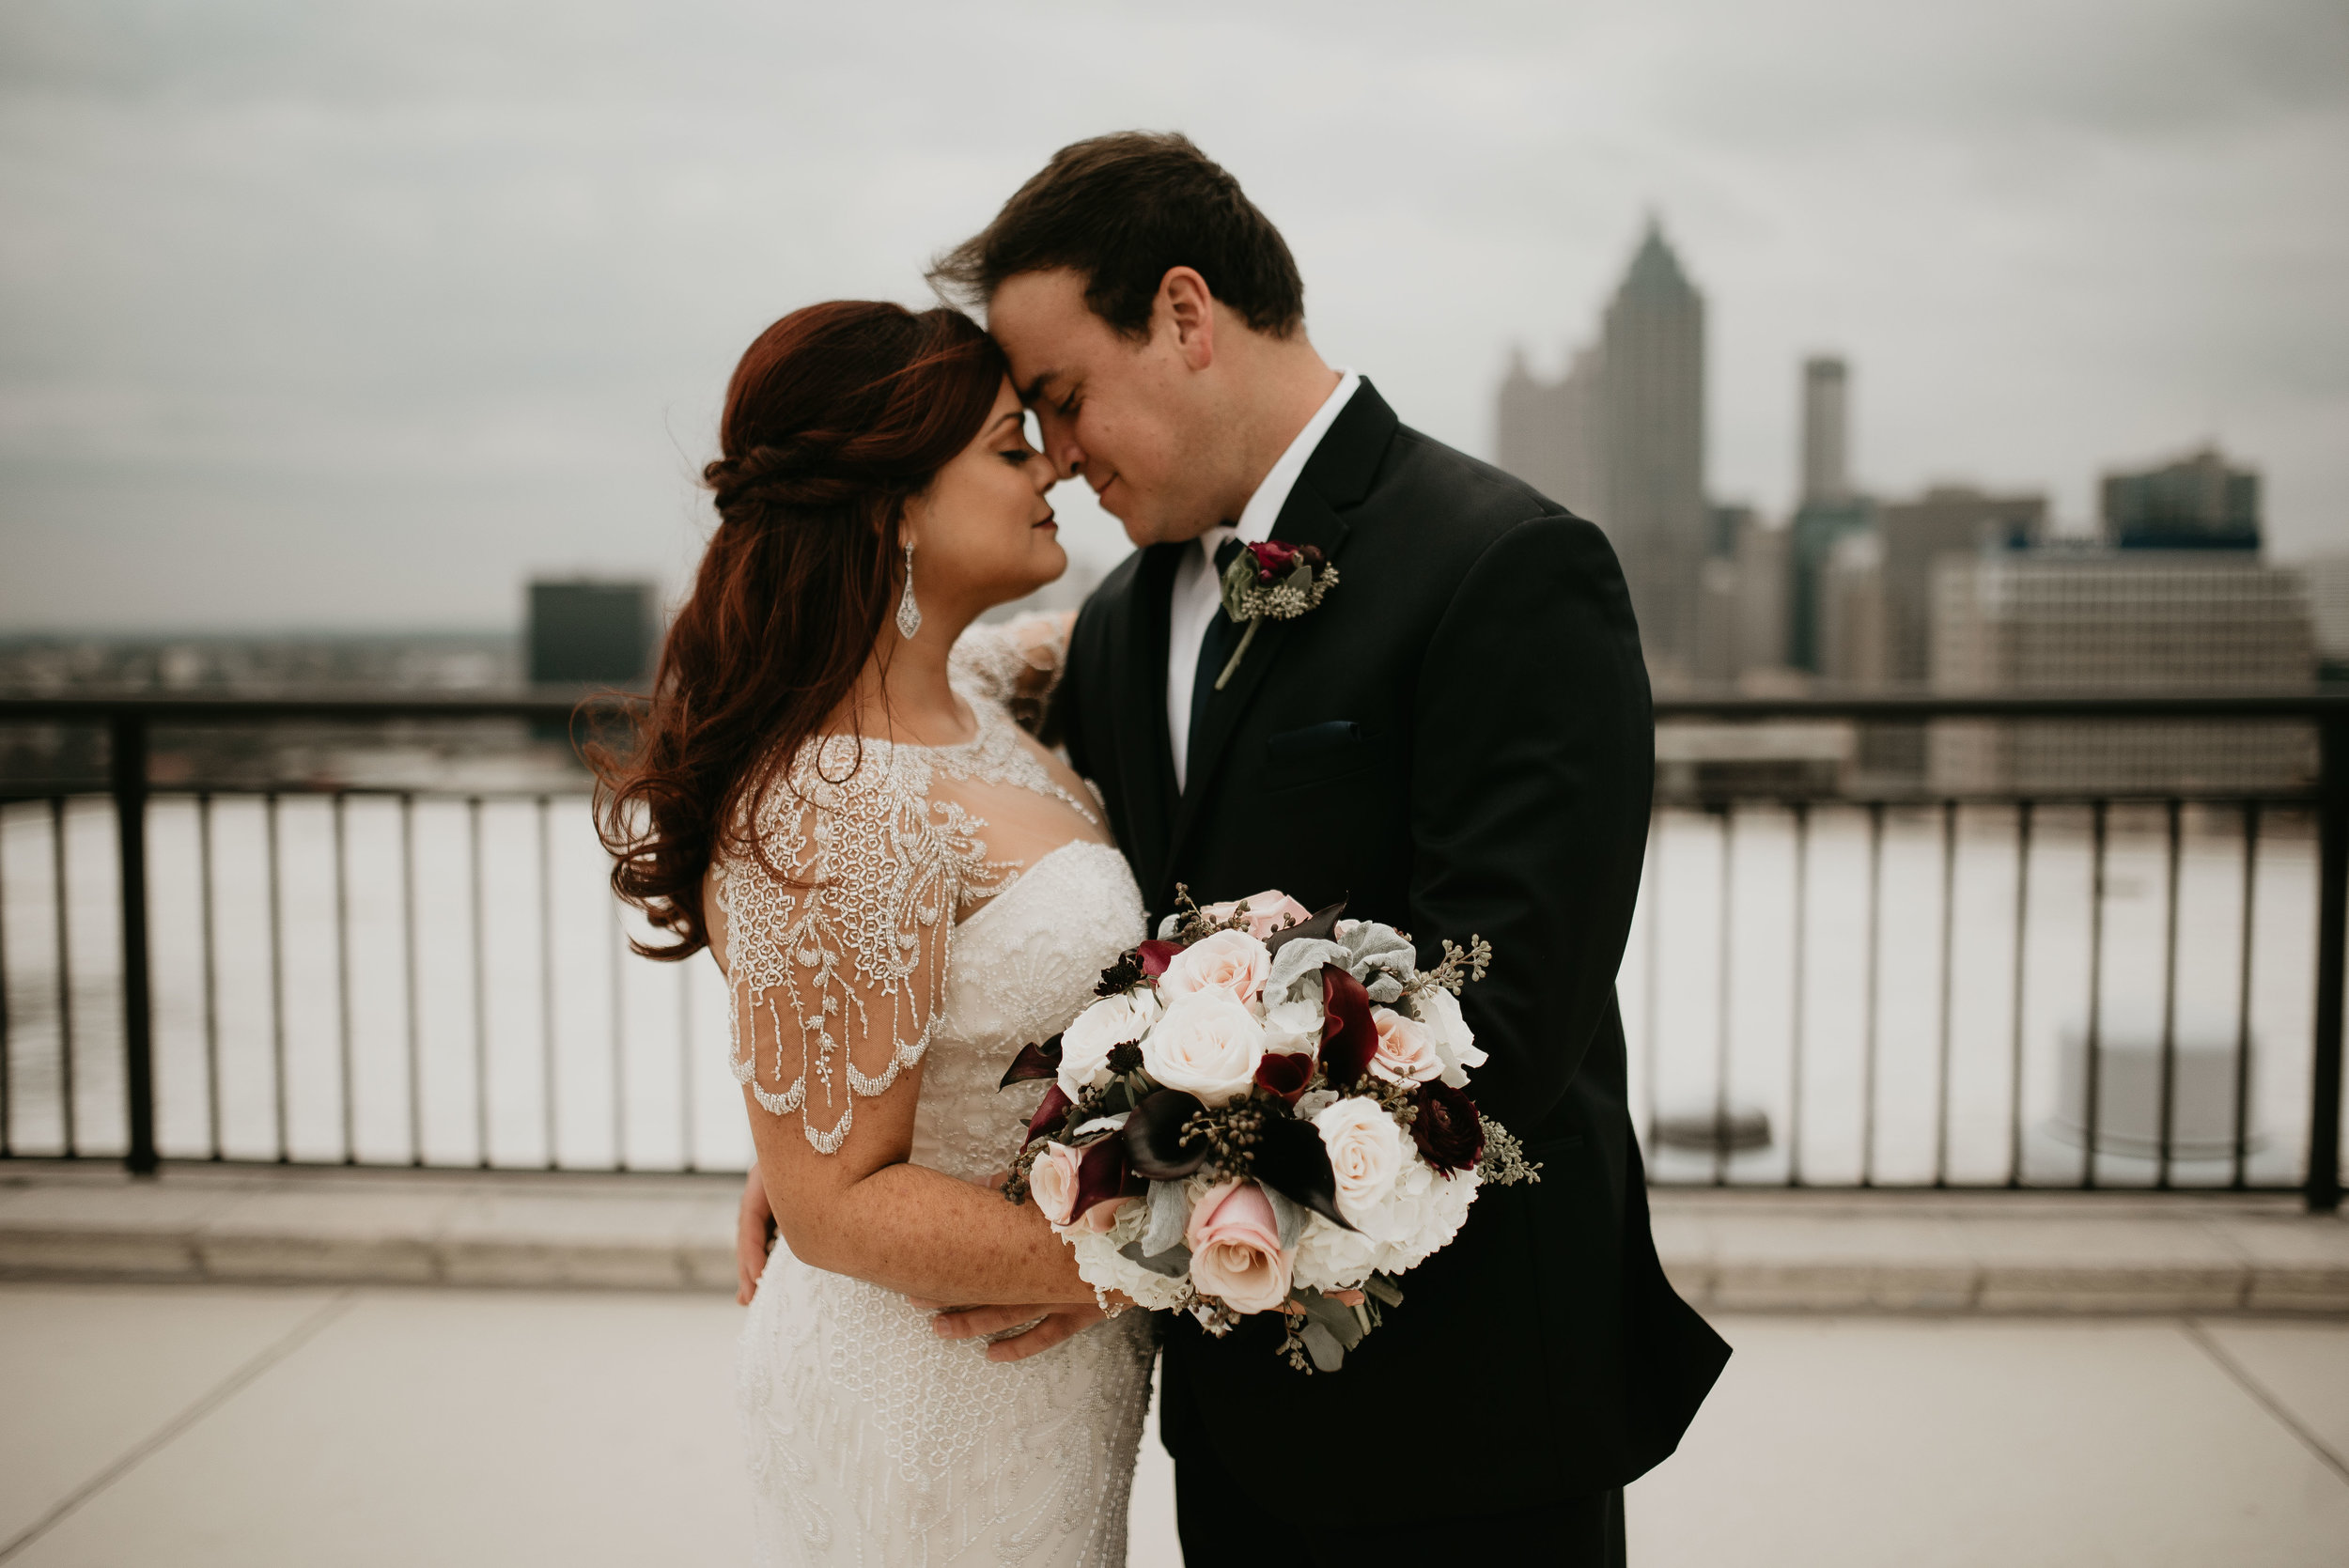 Bride and groom nose-to-nose at the Georgian Terrace roof in Atlanta, GA